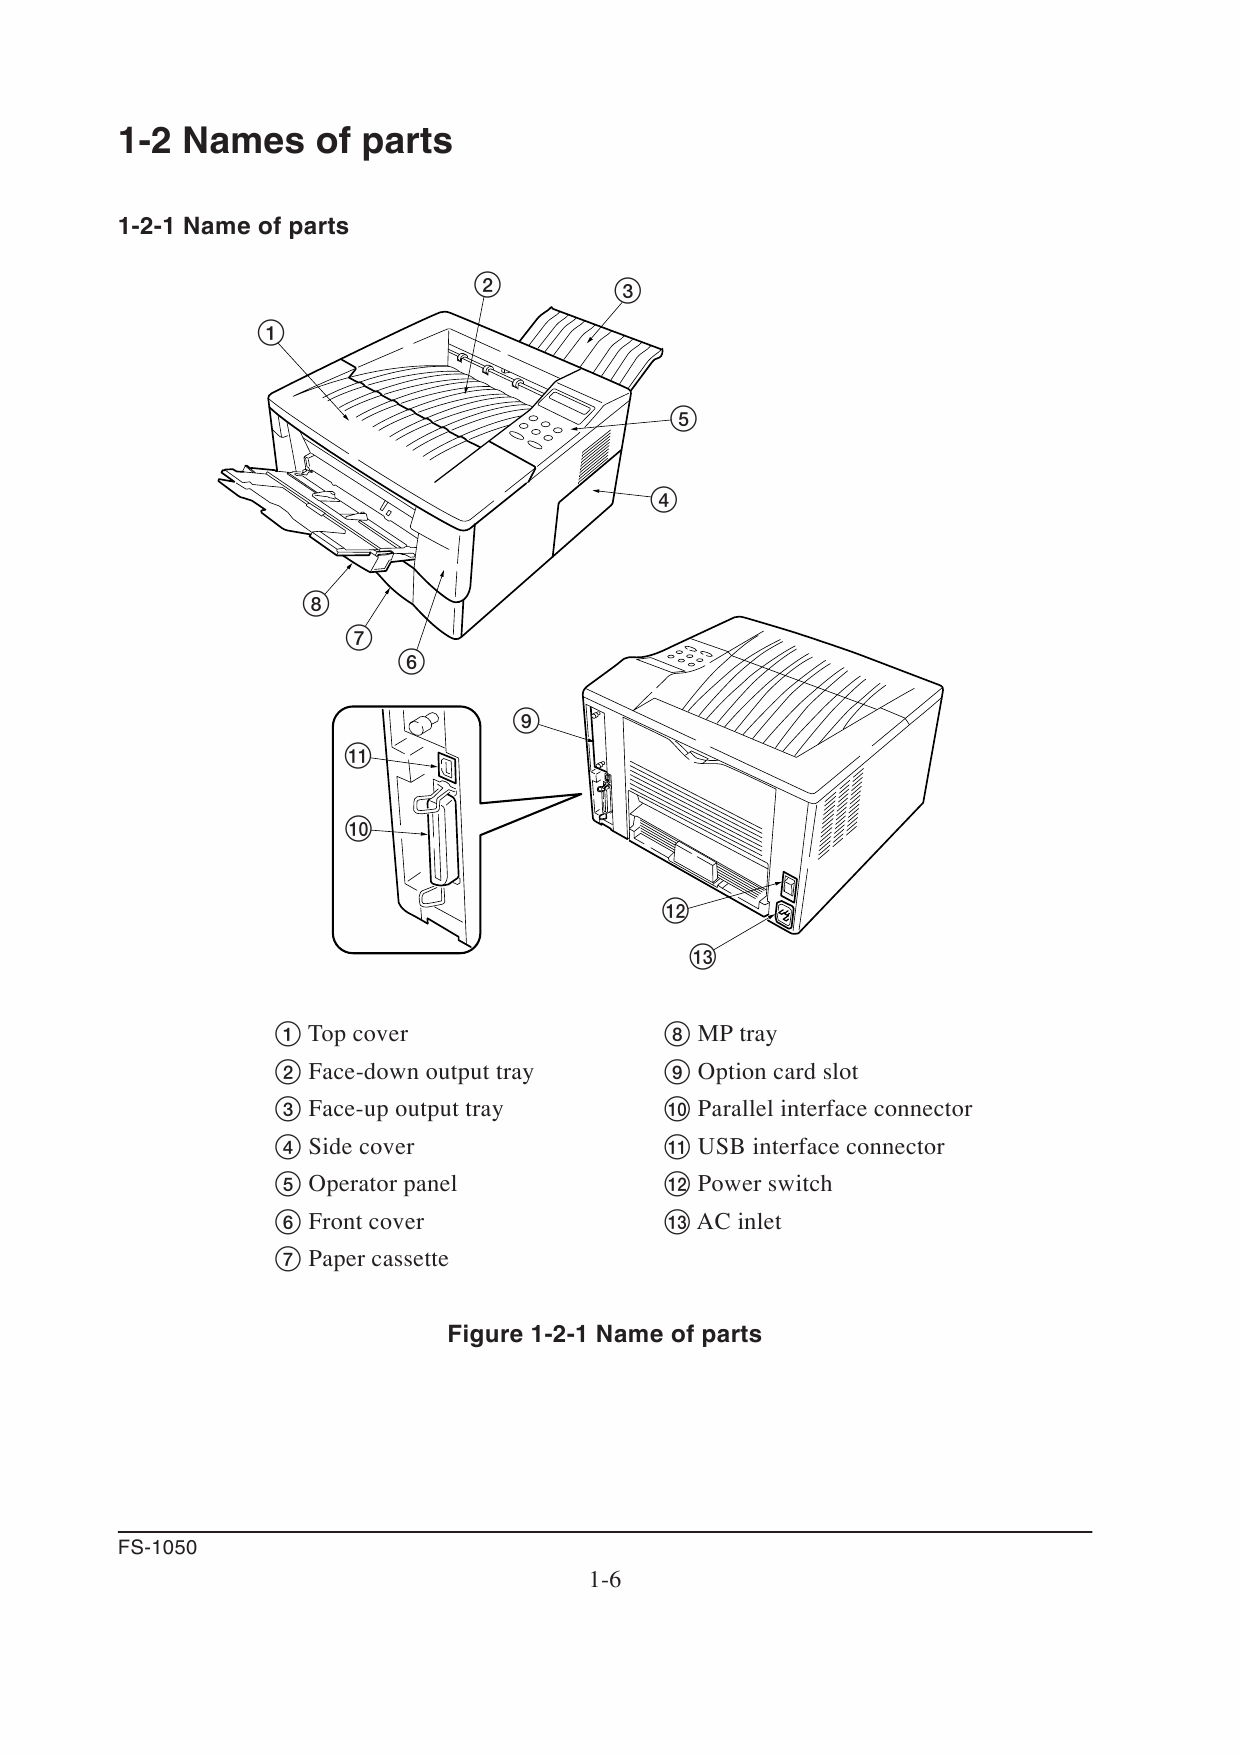 KYOCERA LaserPrinter FS-1050 Parts and Service Manual